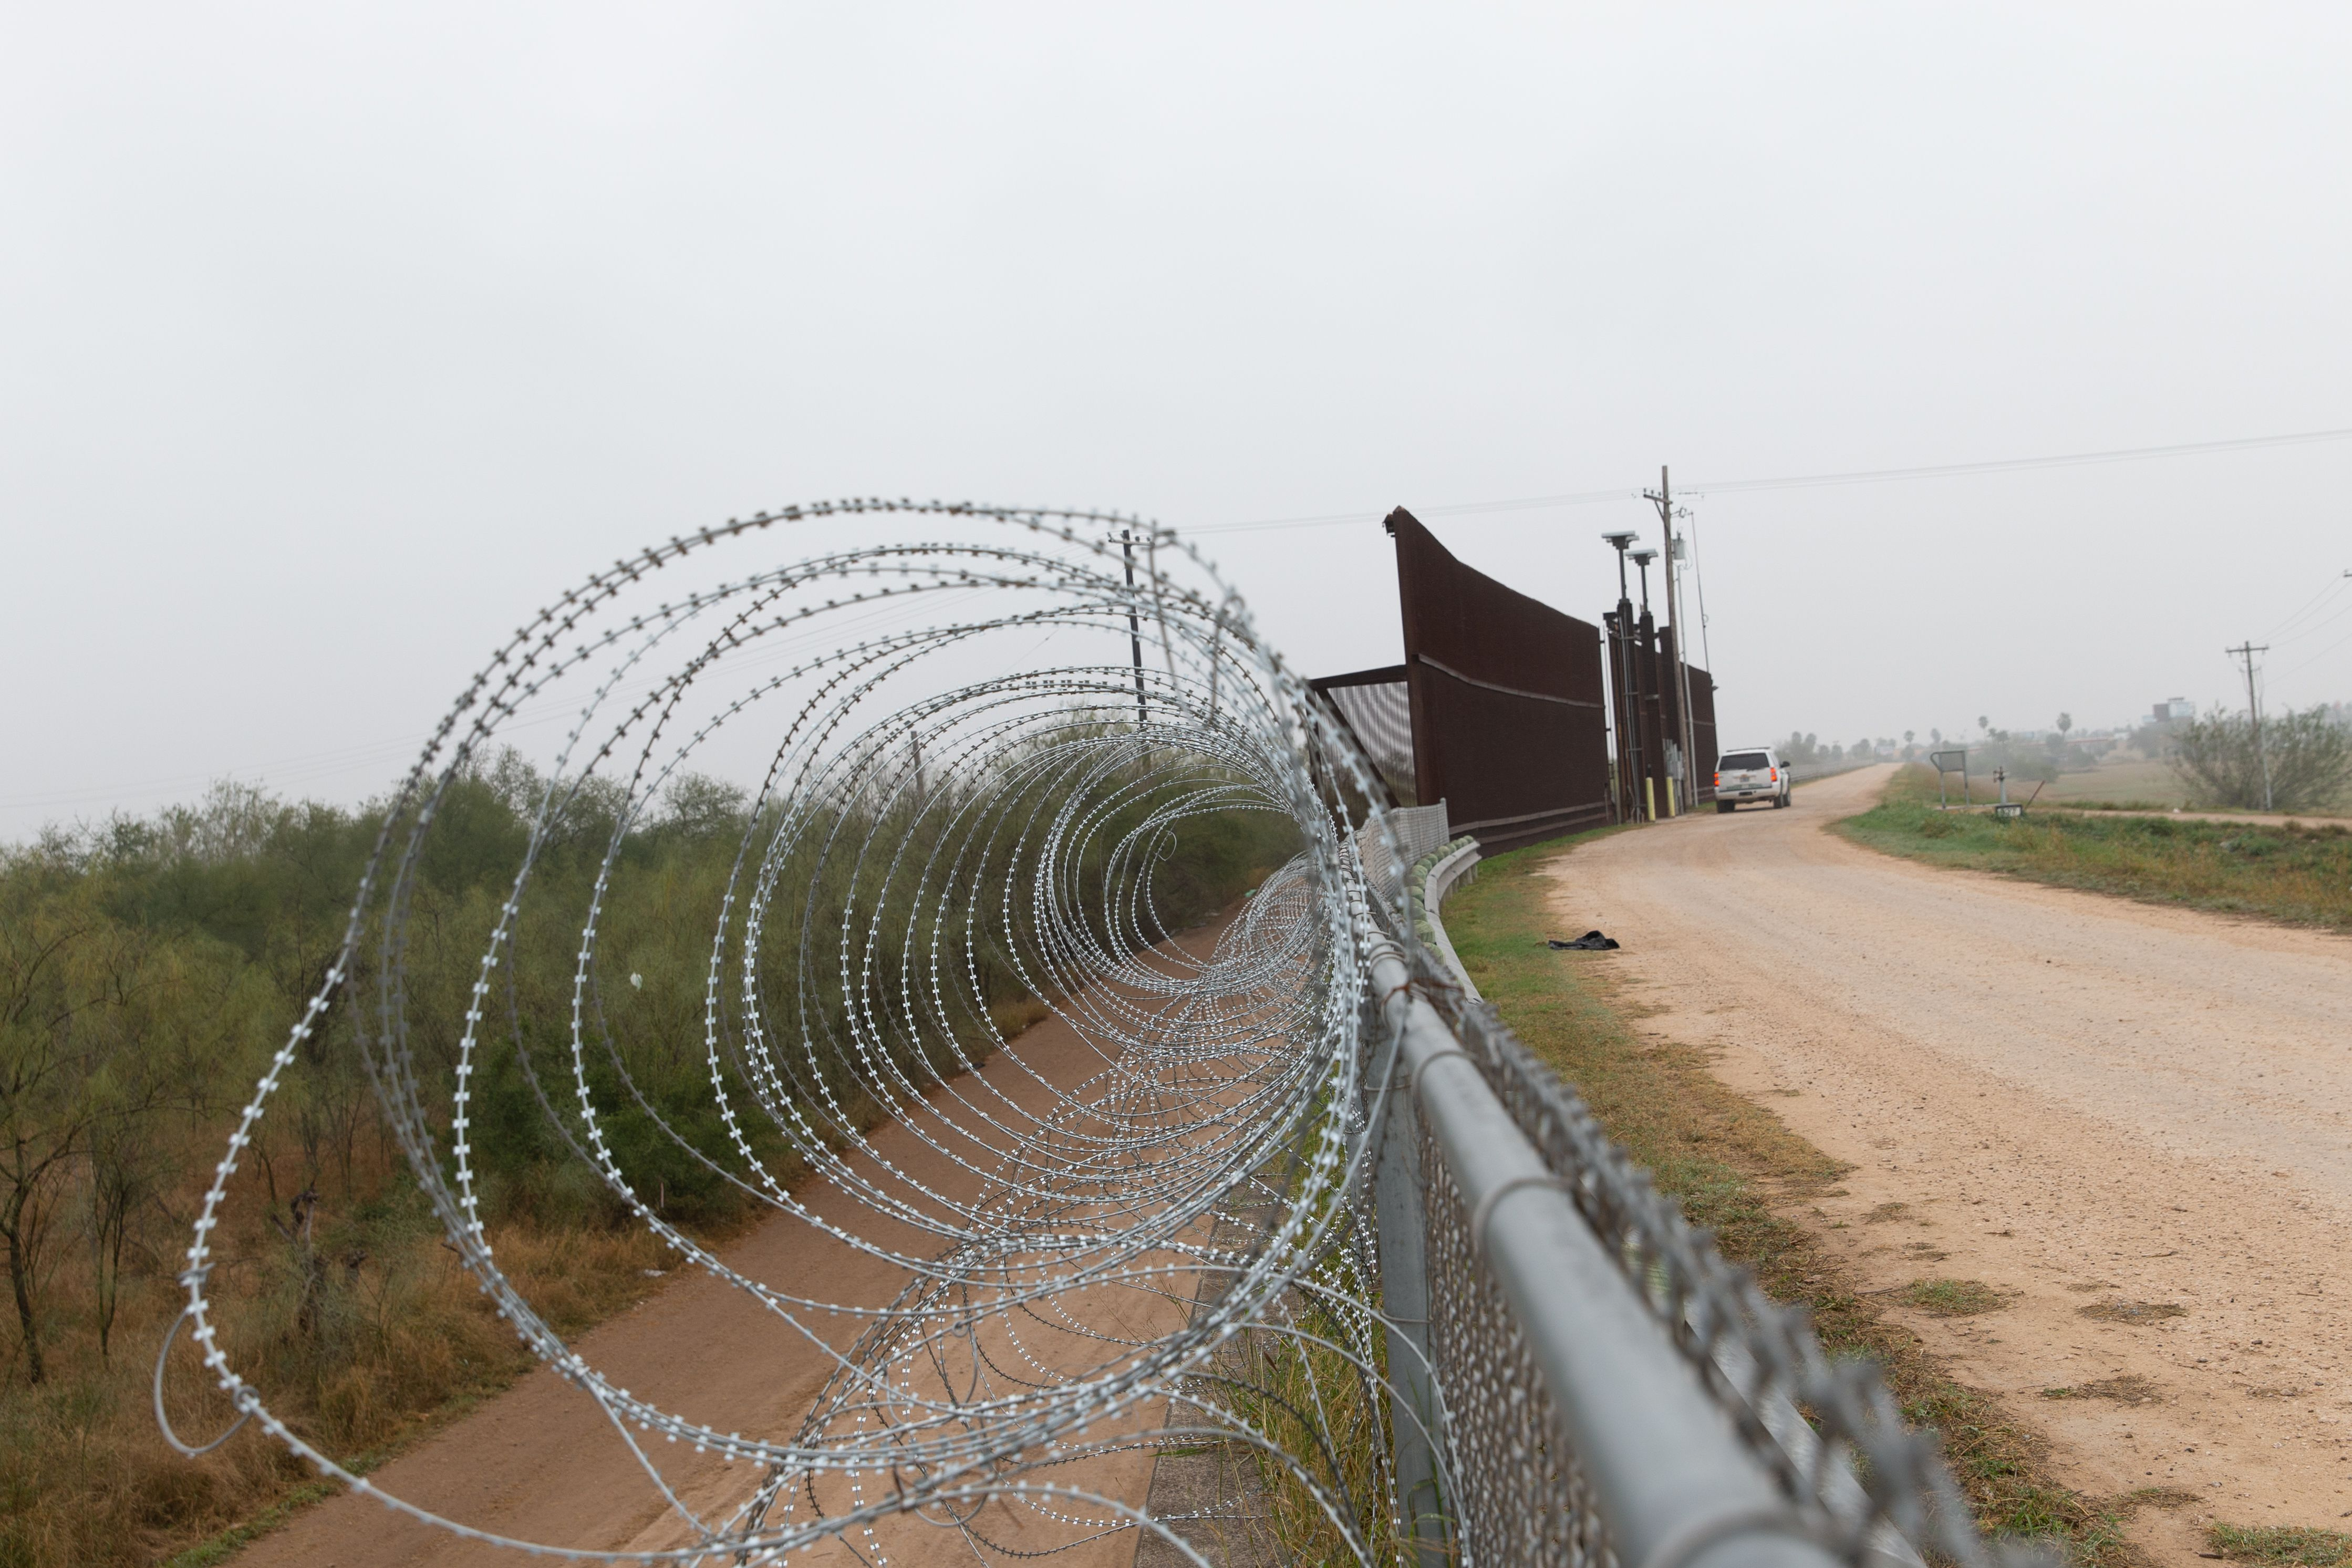 This photo shows a fence with barbed wire on the US side of the US-Mexican border on January 15, 2019 in McAllen, Texas. (SUZANNE CORDEIRO/AFP via Getty Images)